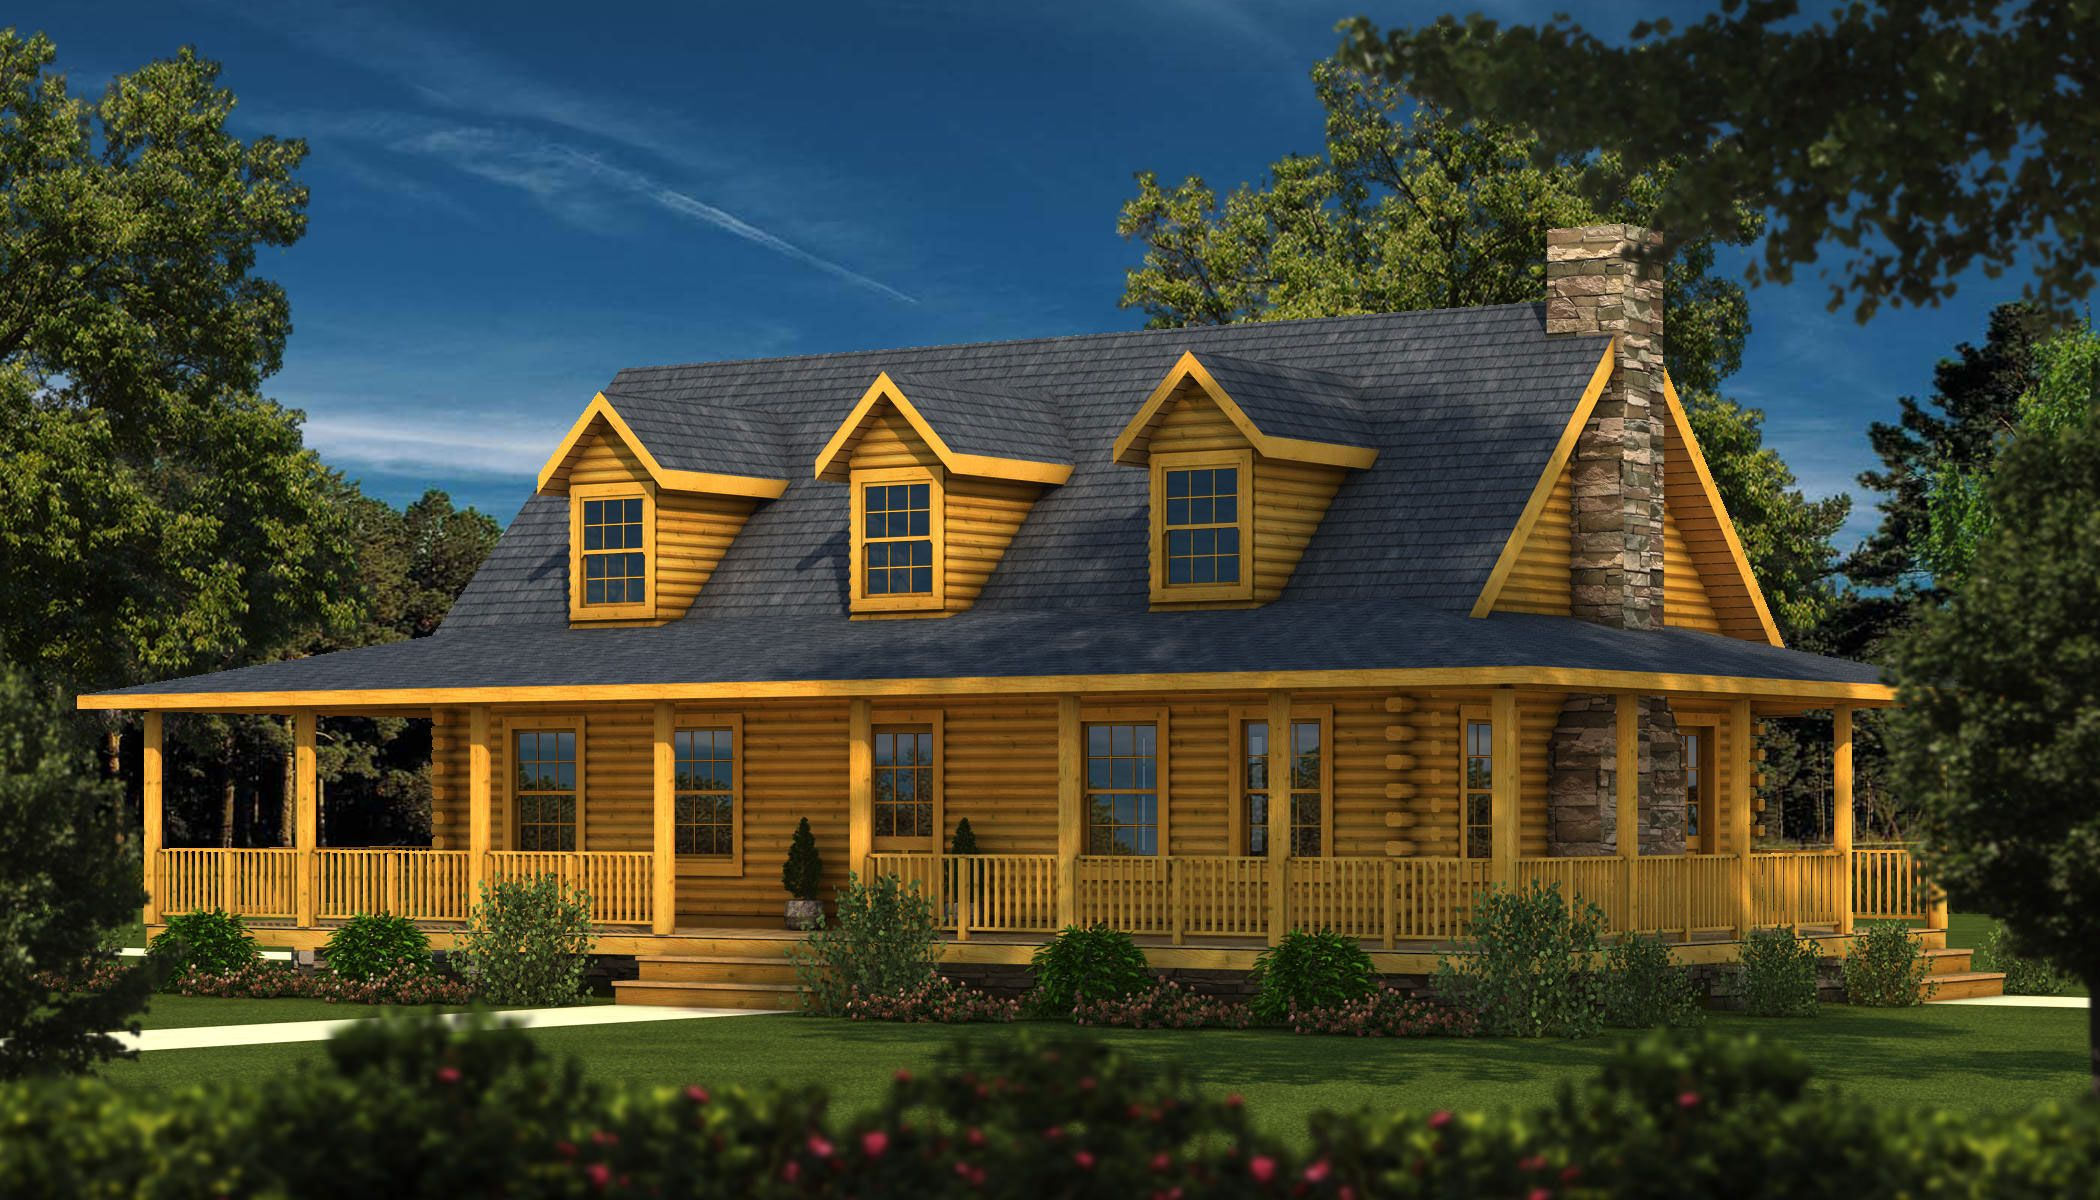 Log Home House Plans Designs. House  Charleston II Log Home Plan Southland Homes https www